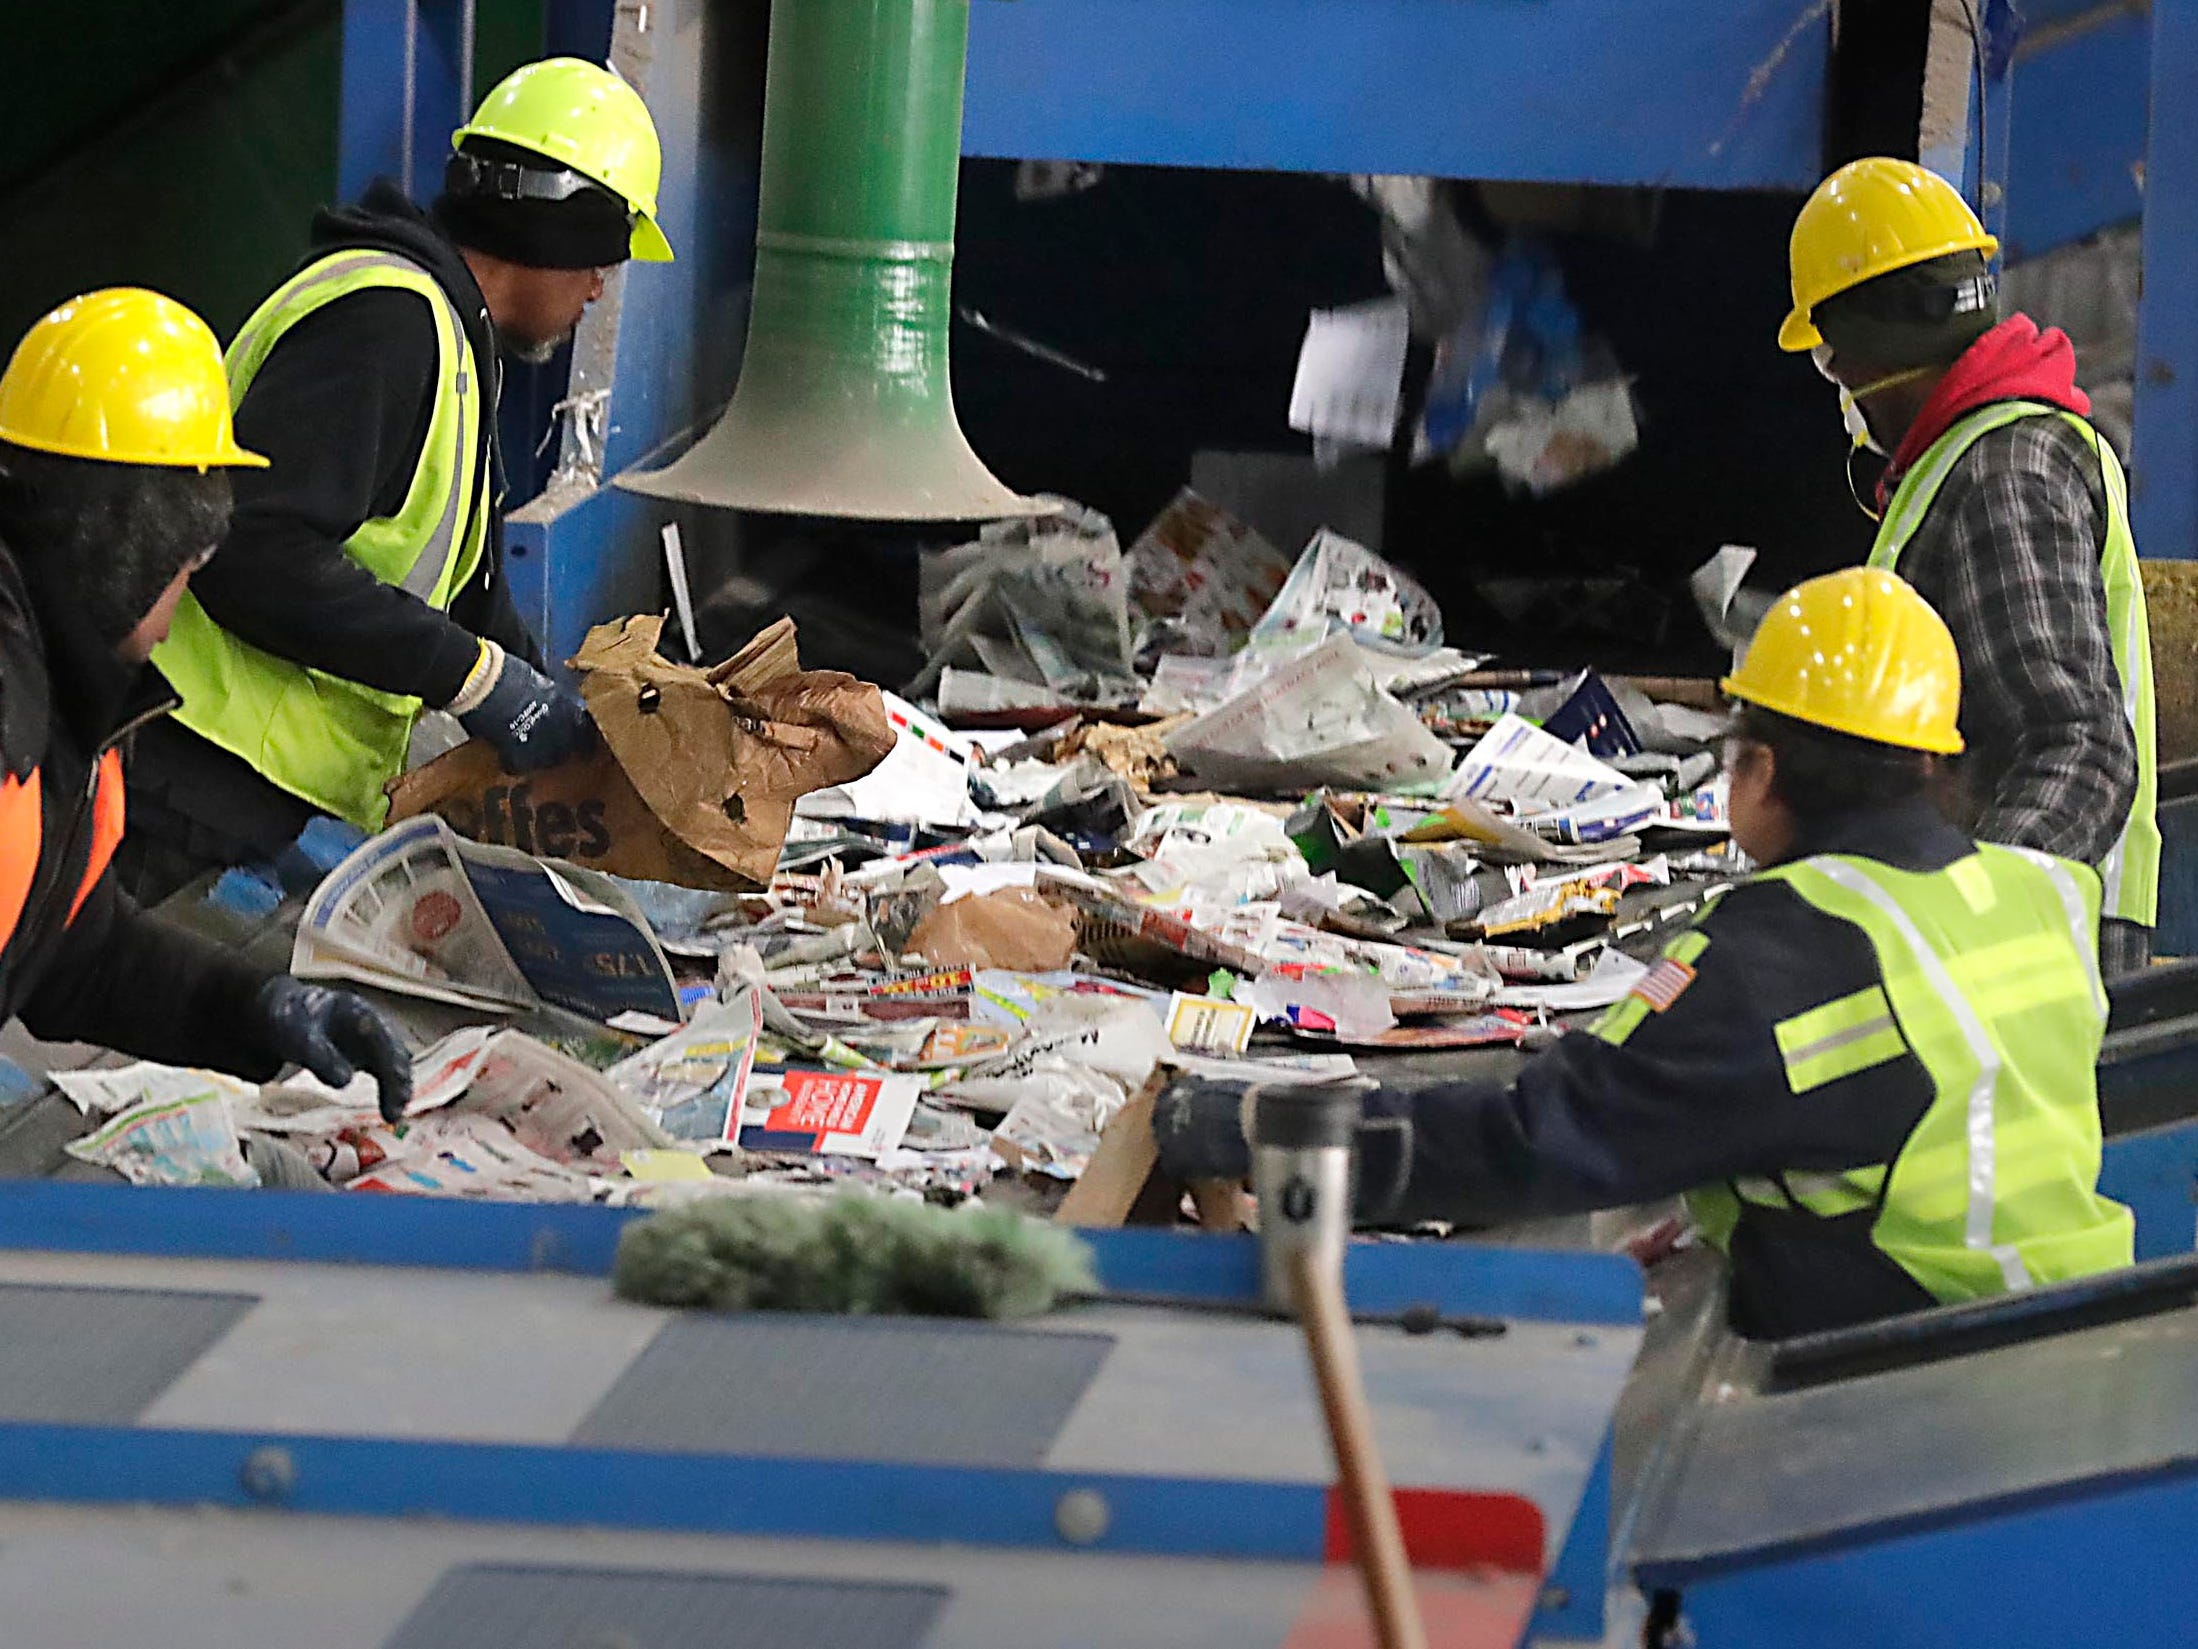 Workers quickly sort and remove items that cannot be recycled from a fast-moving belt at the recycling center in the Menomonee Valley that is jointly owned by the City of Milwaukee and 27 Waukesha County municipalities. Much of their work is removing items people are not supposed to put into their recycling bins, mainly plastic bags that contain other items.